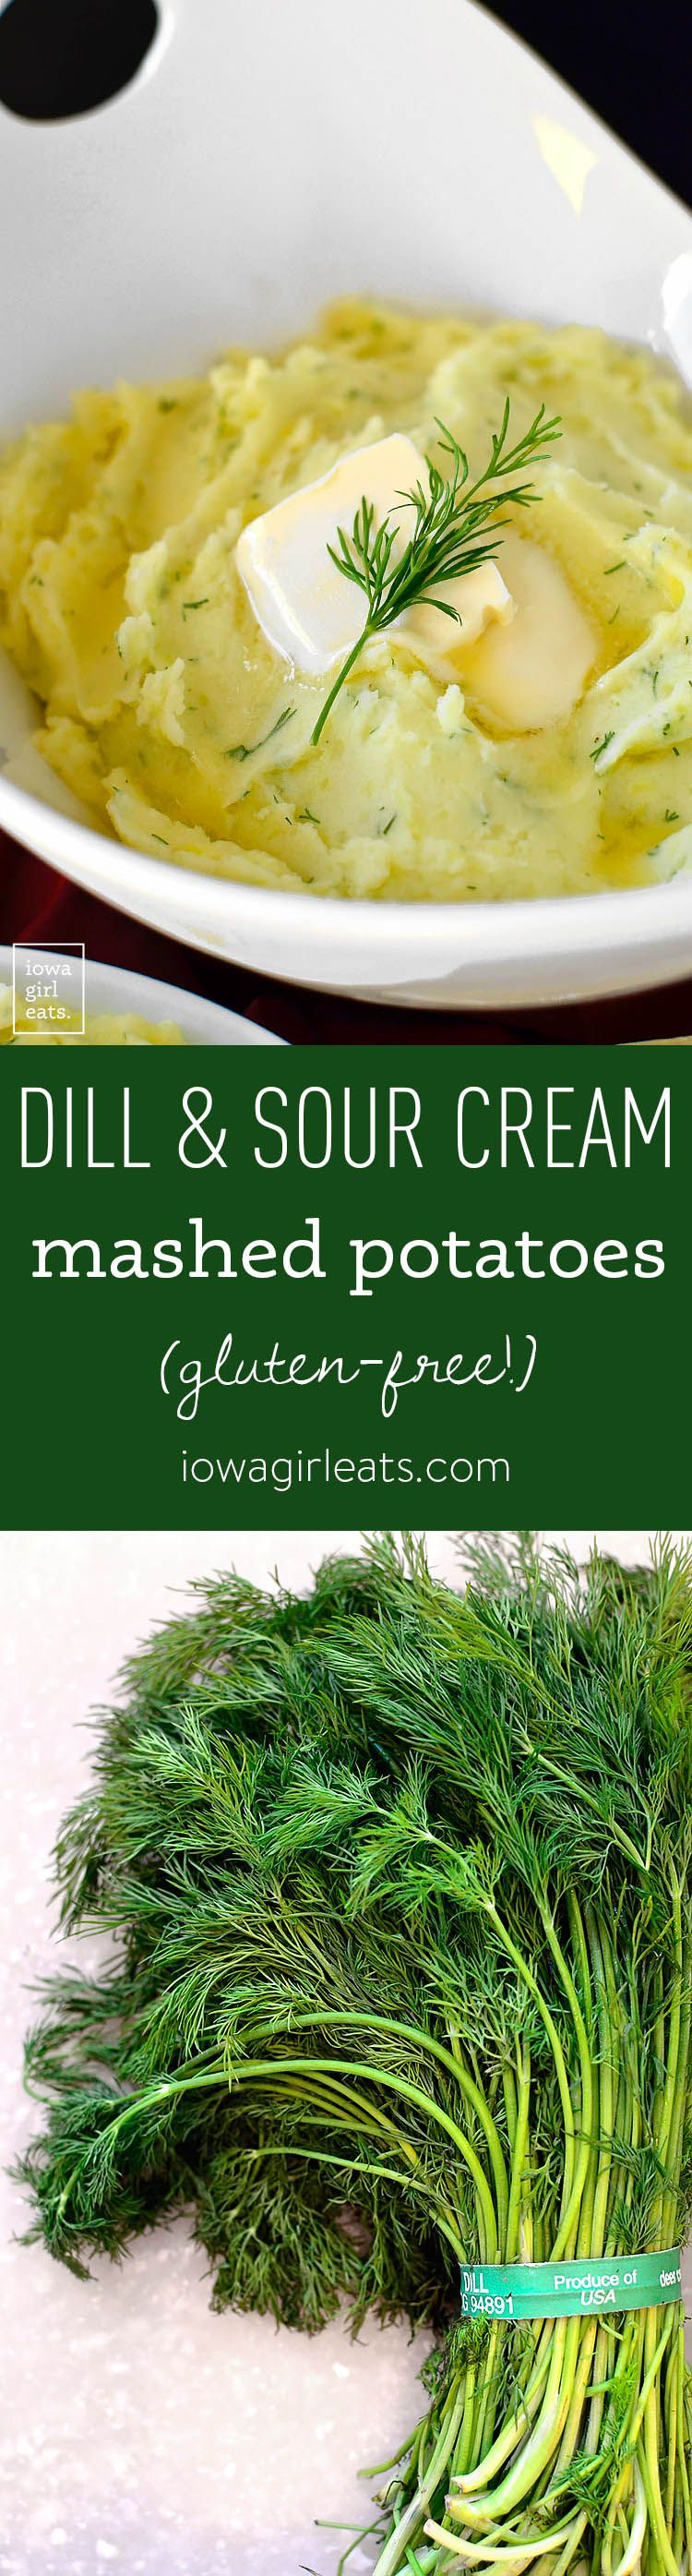 Dill and Sour Cream Mashed Potatoes #sourcream